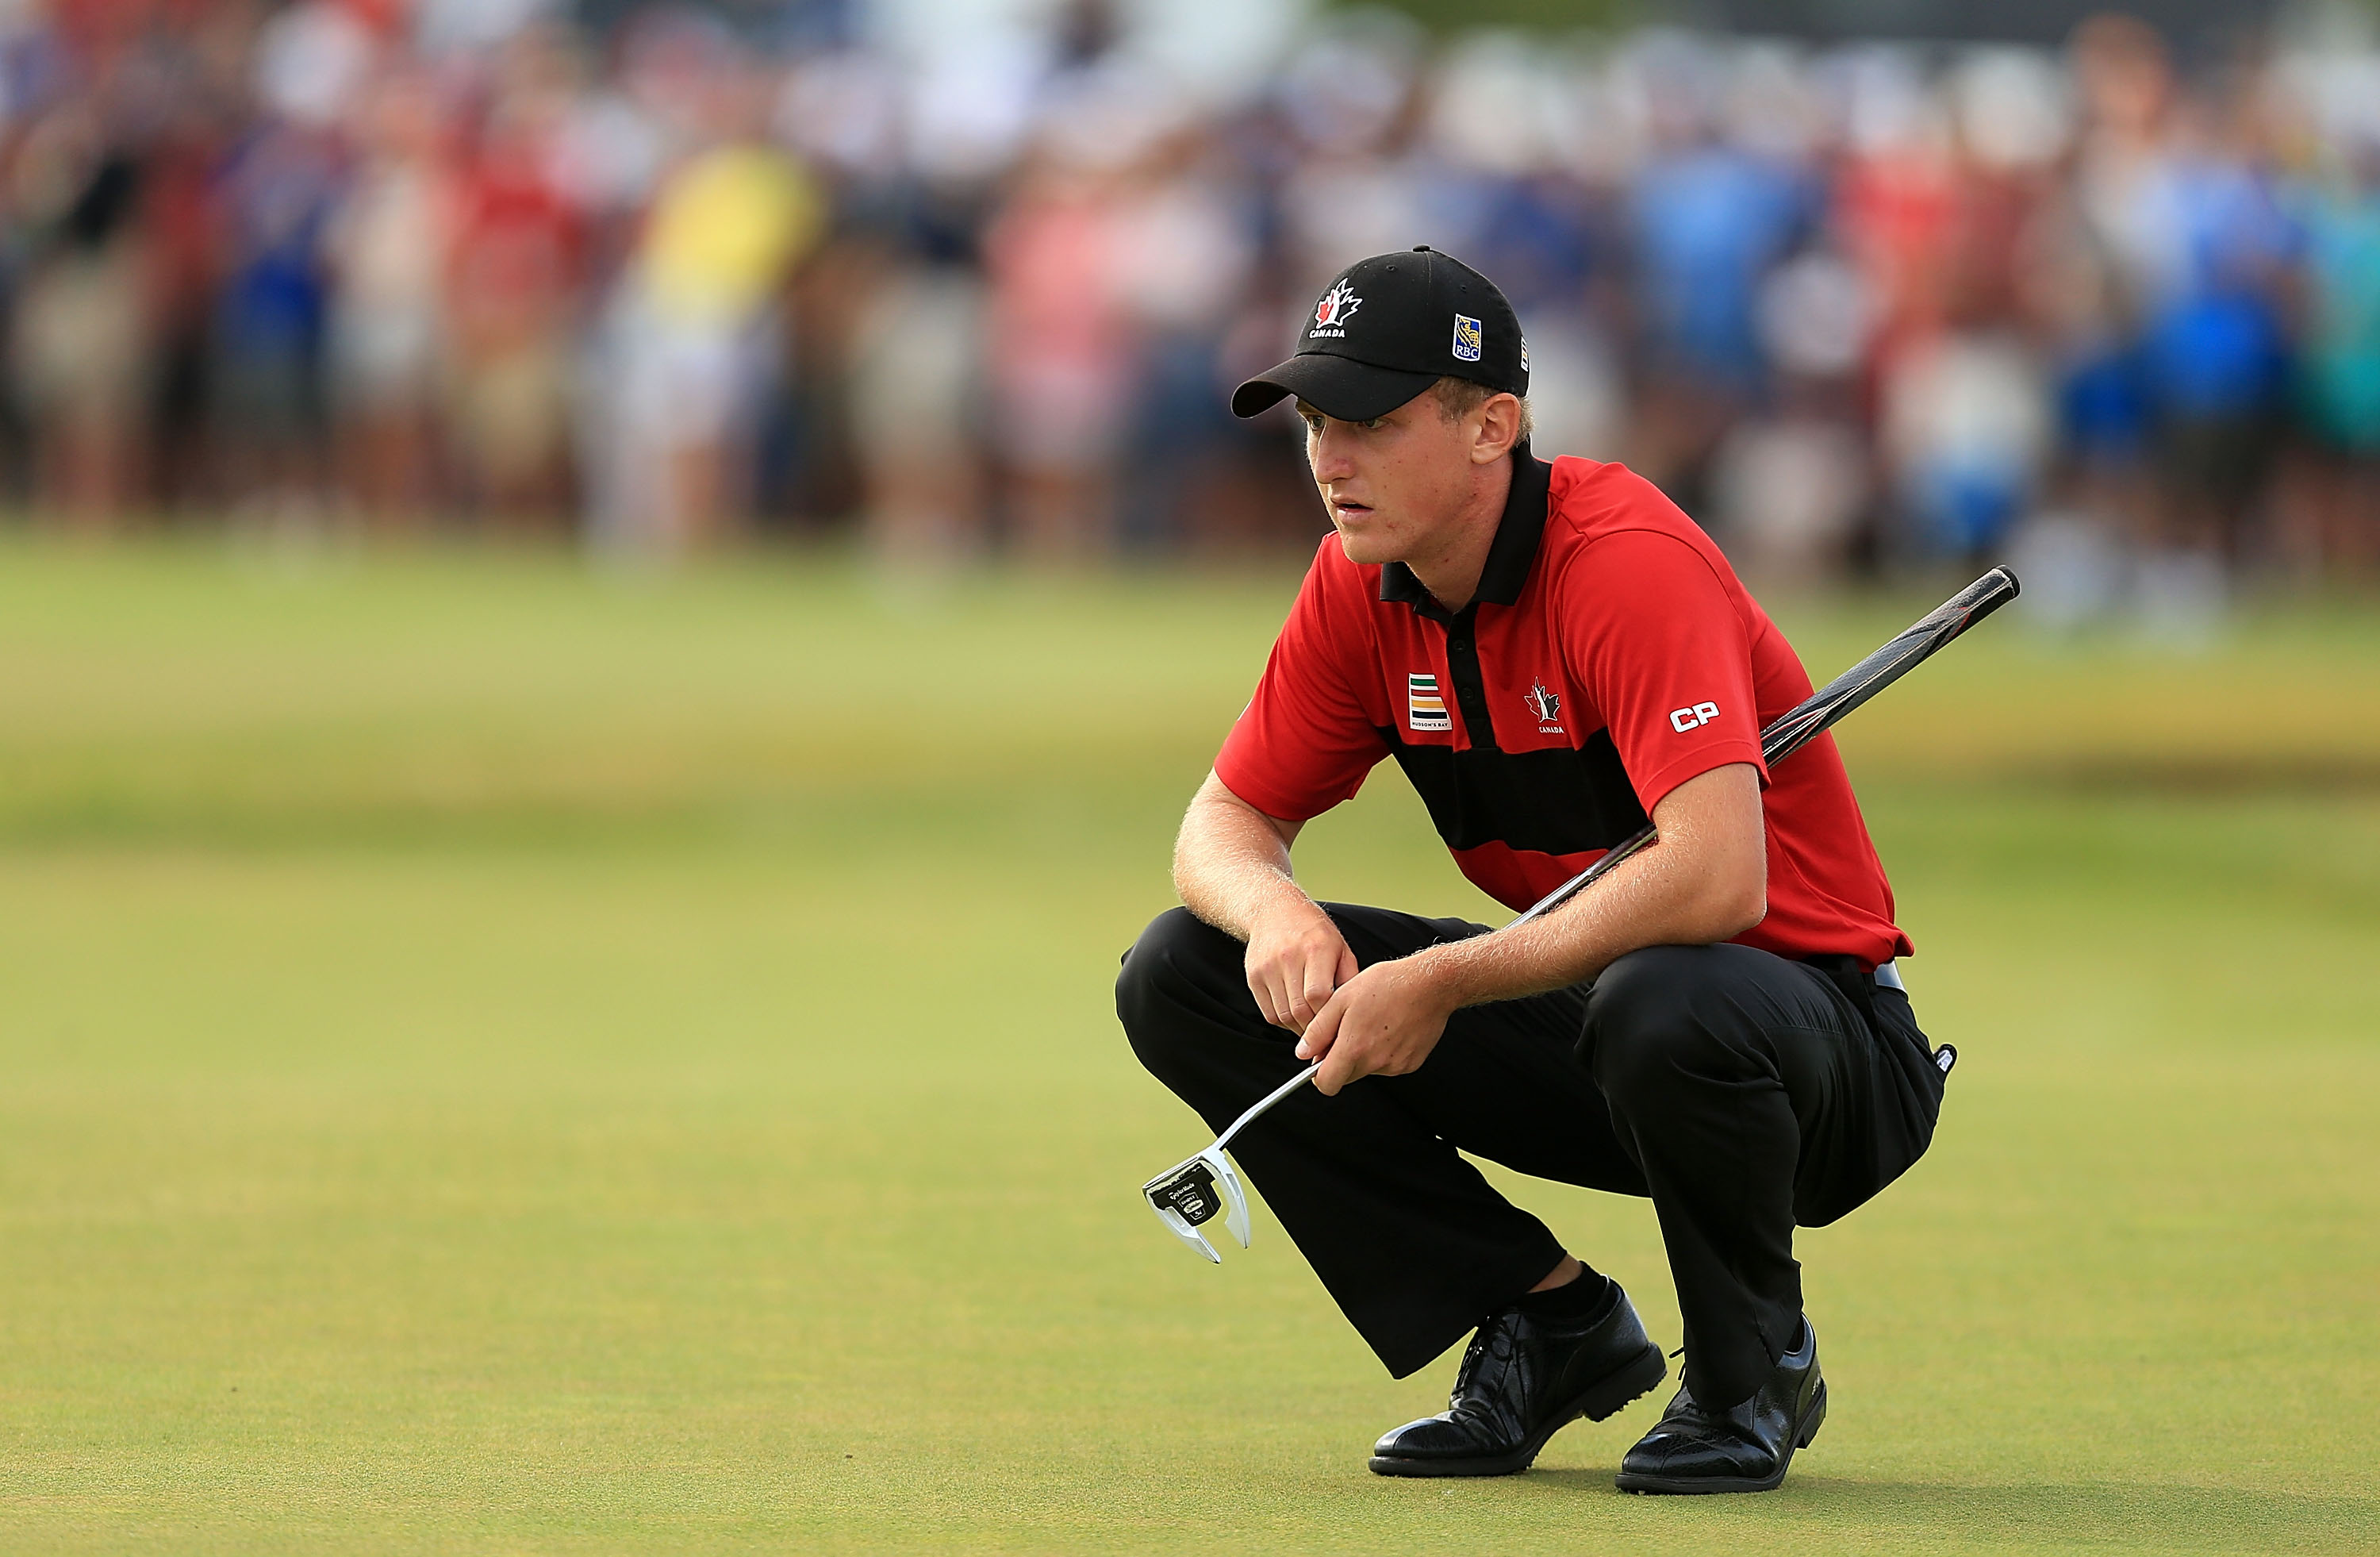 Jared du Toit heads to the Porter Cup after an eye-opening showing at the Canadian Open (Getty Images)